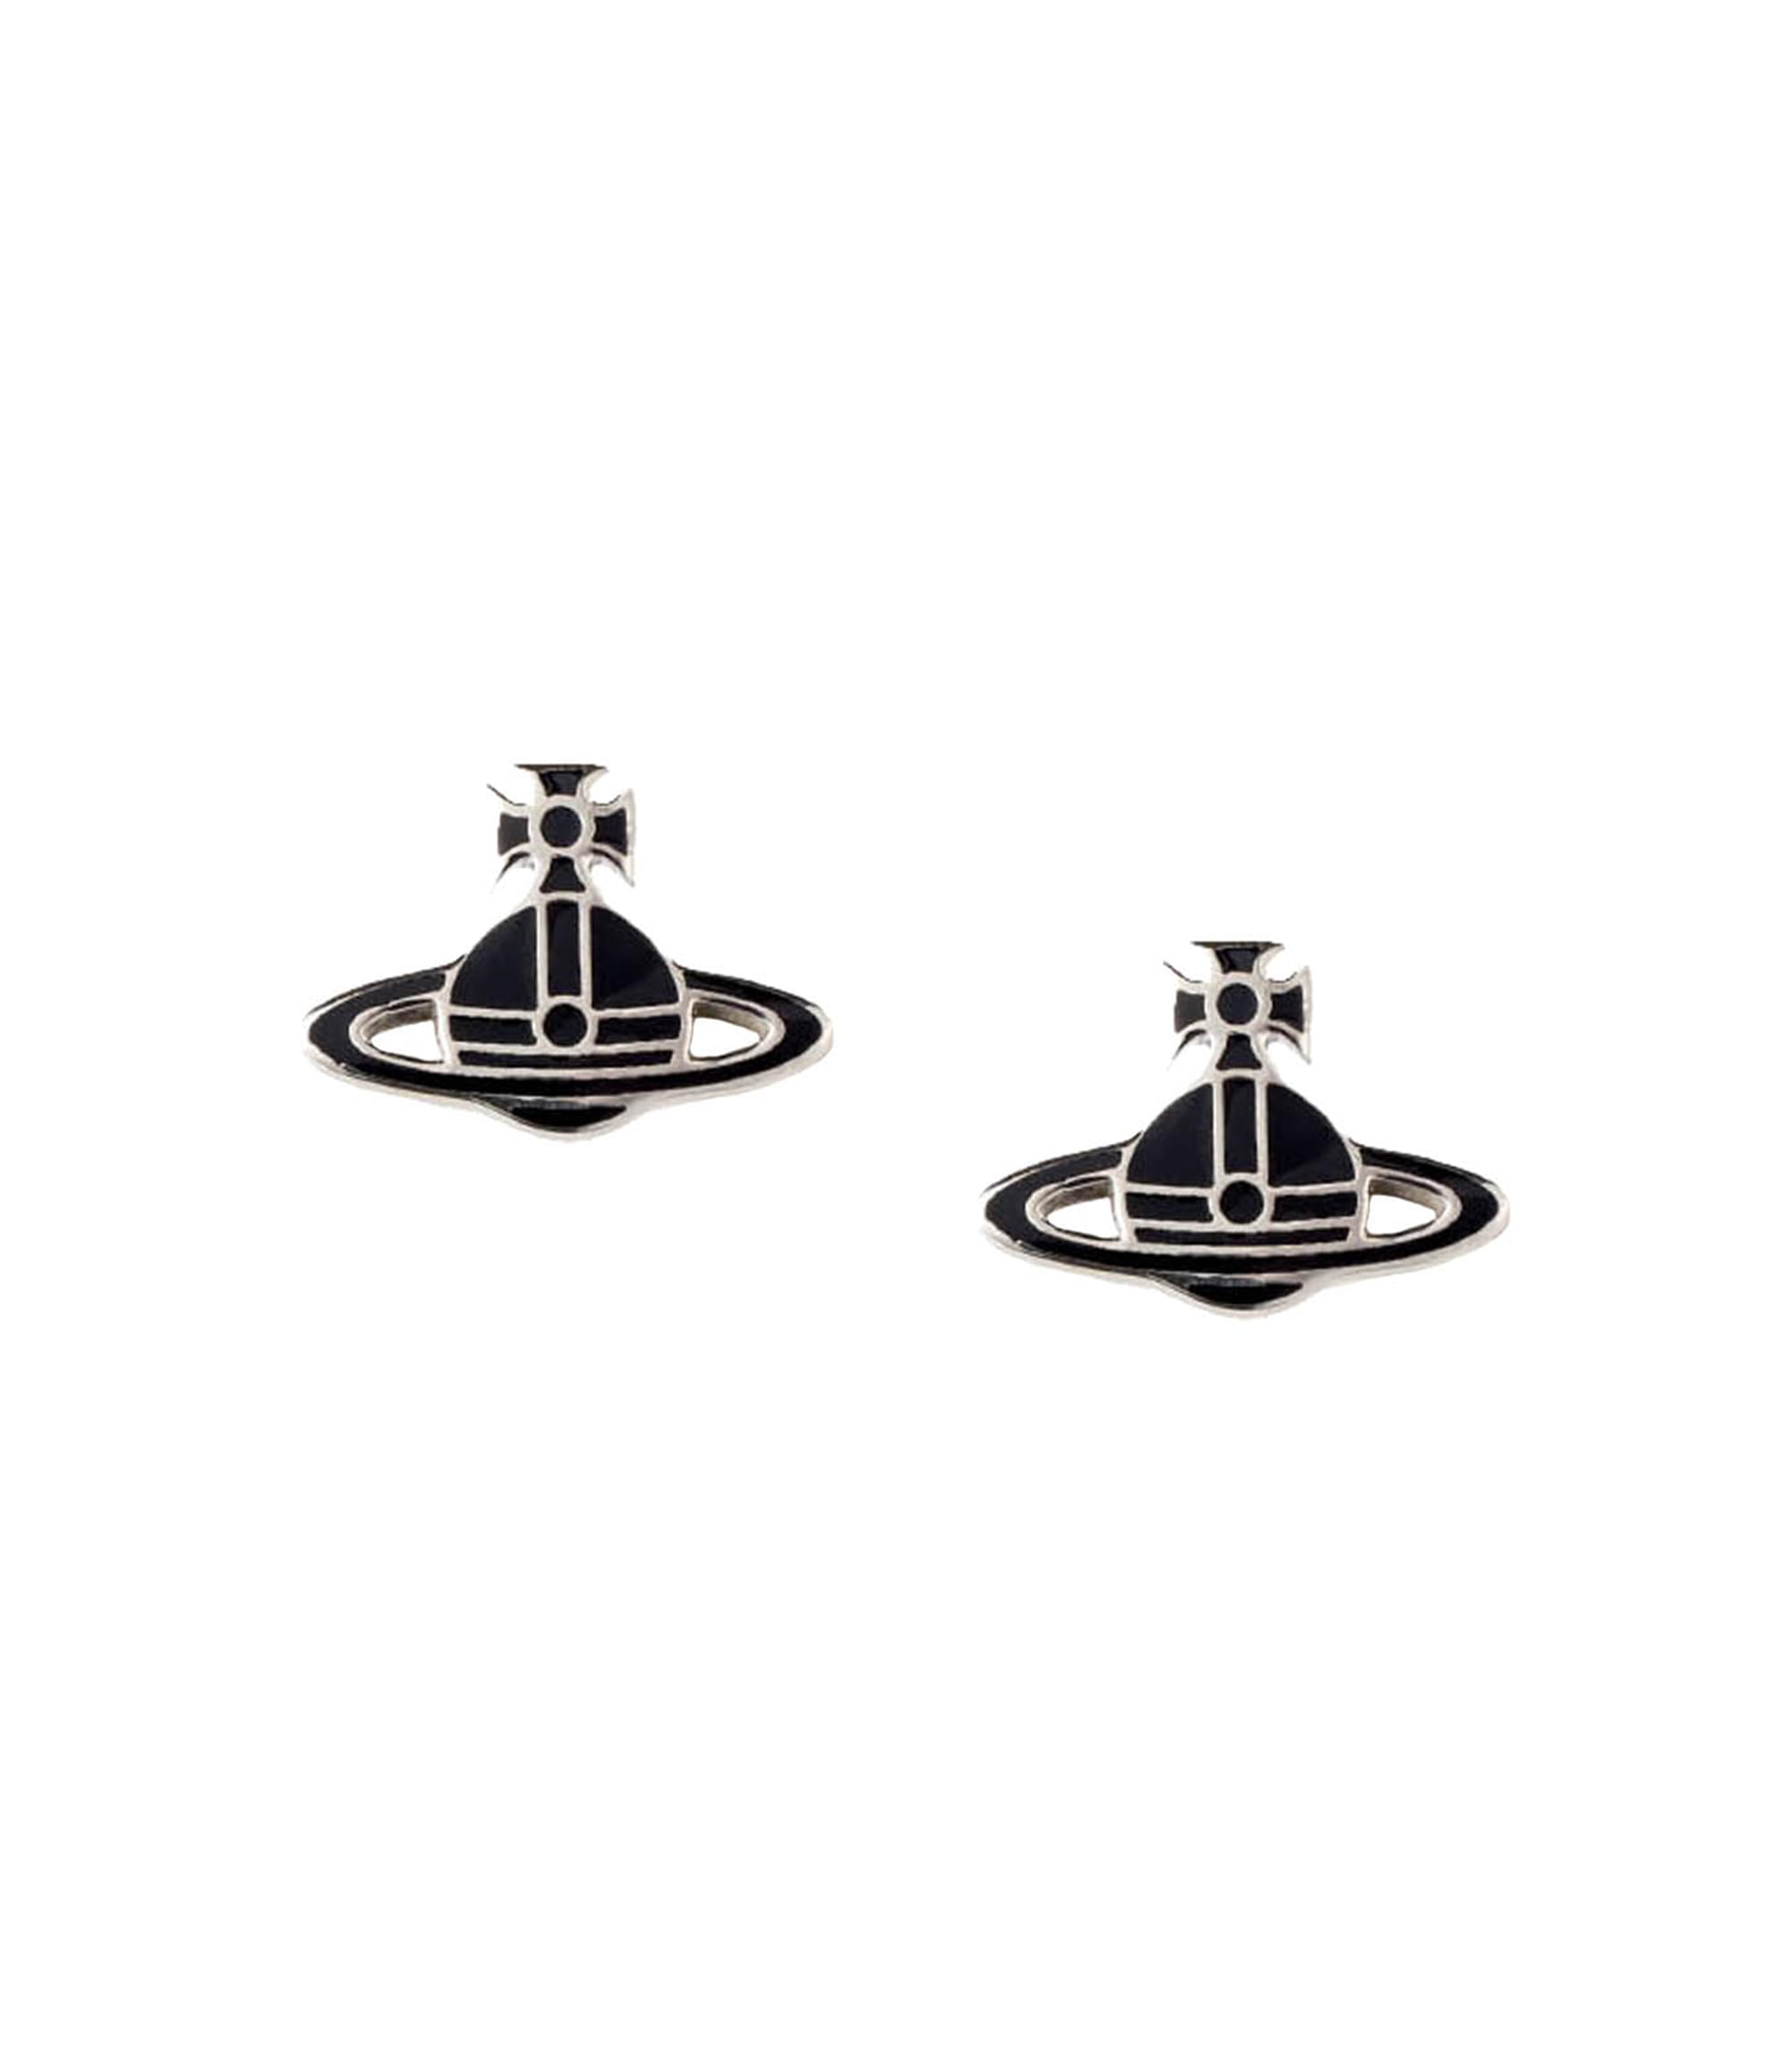 Vivienne Westwood Black Kate Earrings